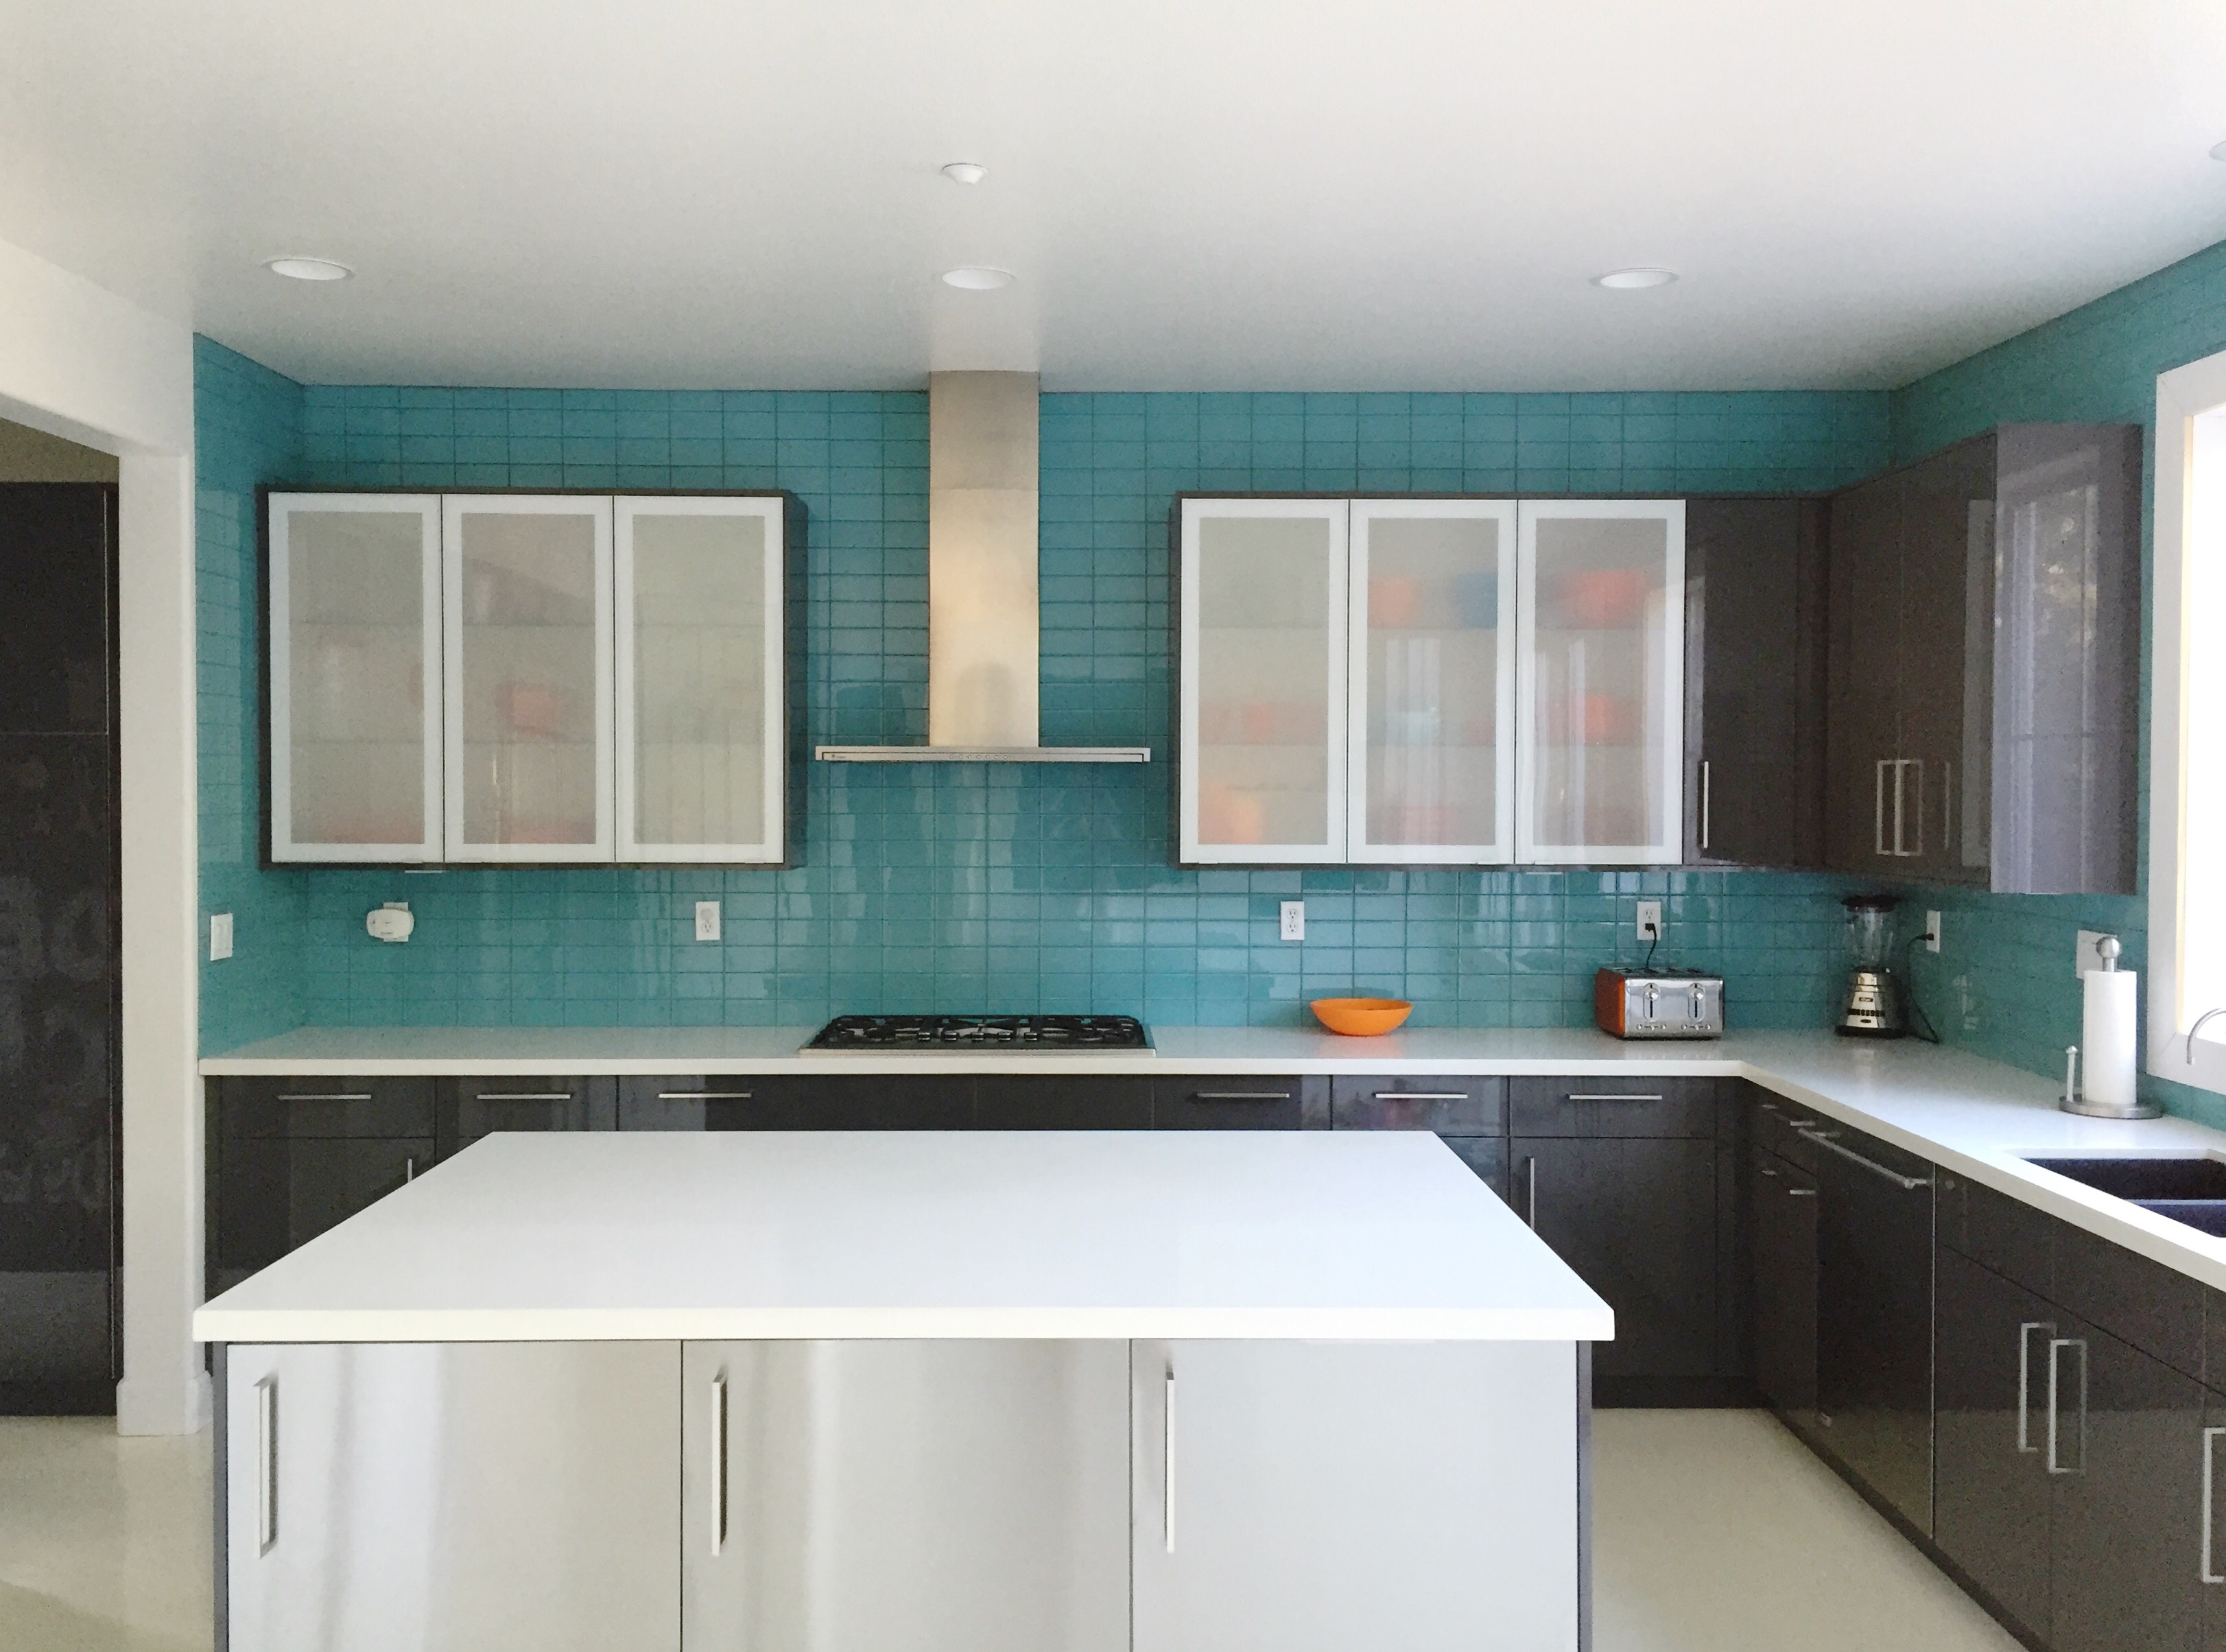 100+ [ glass backsplash ideas for kitchens ] | glass backsplash